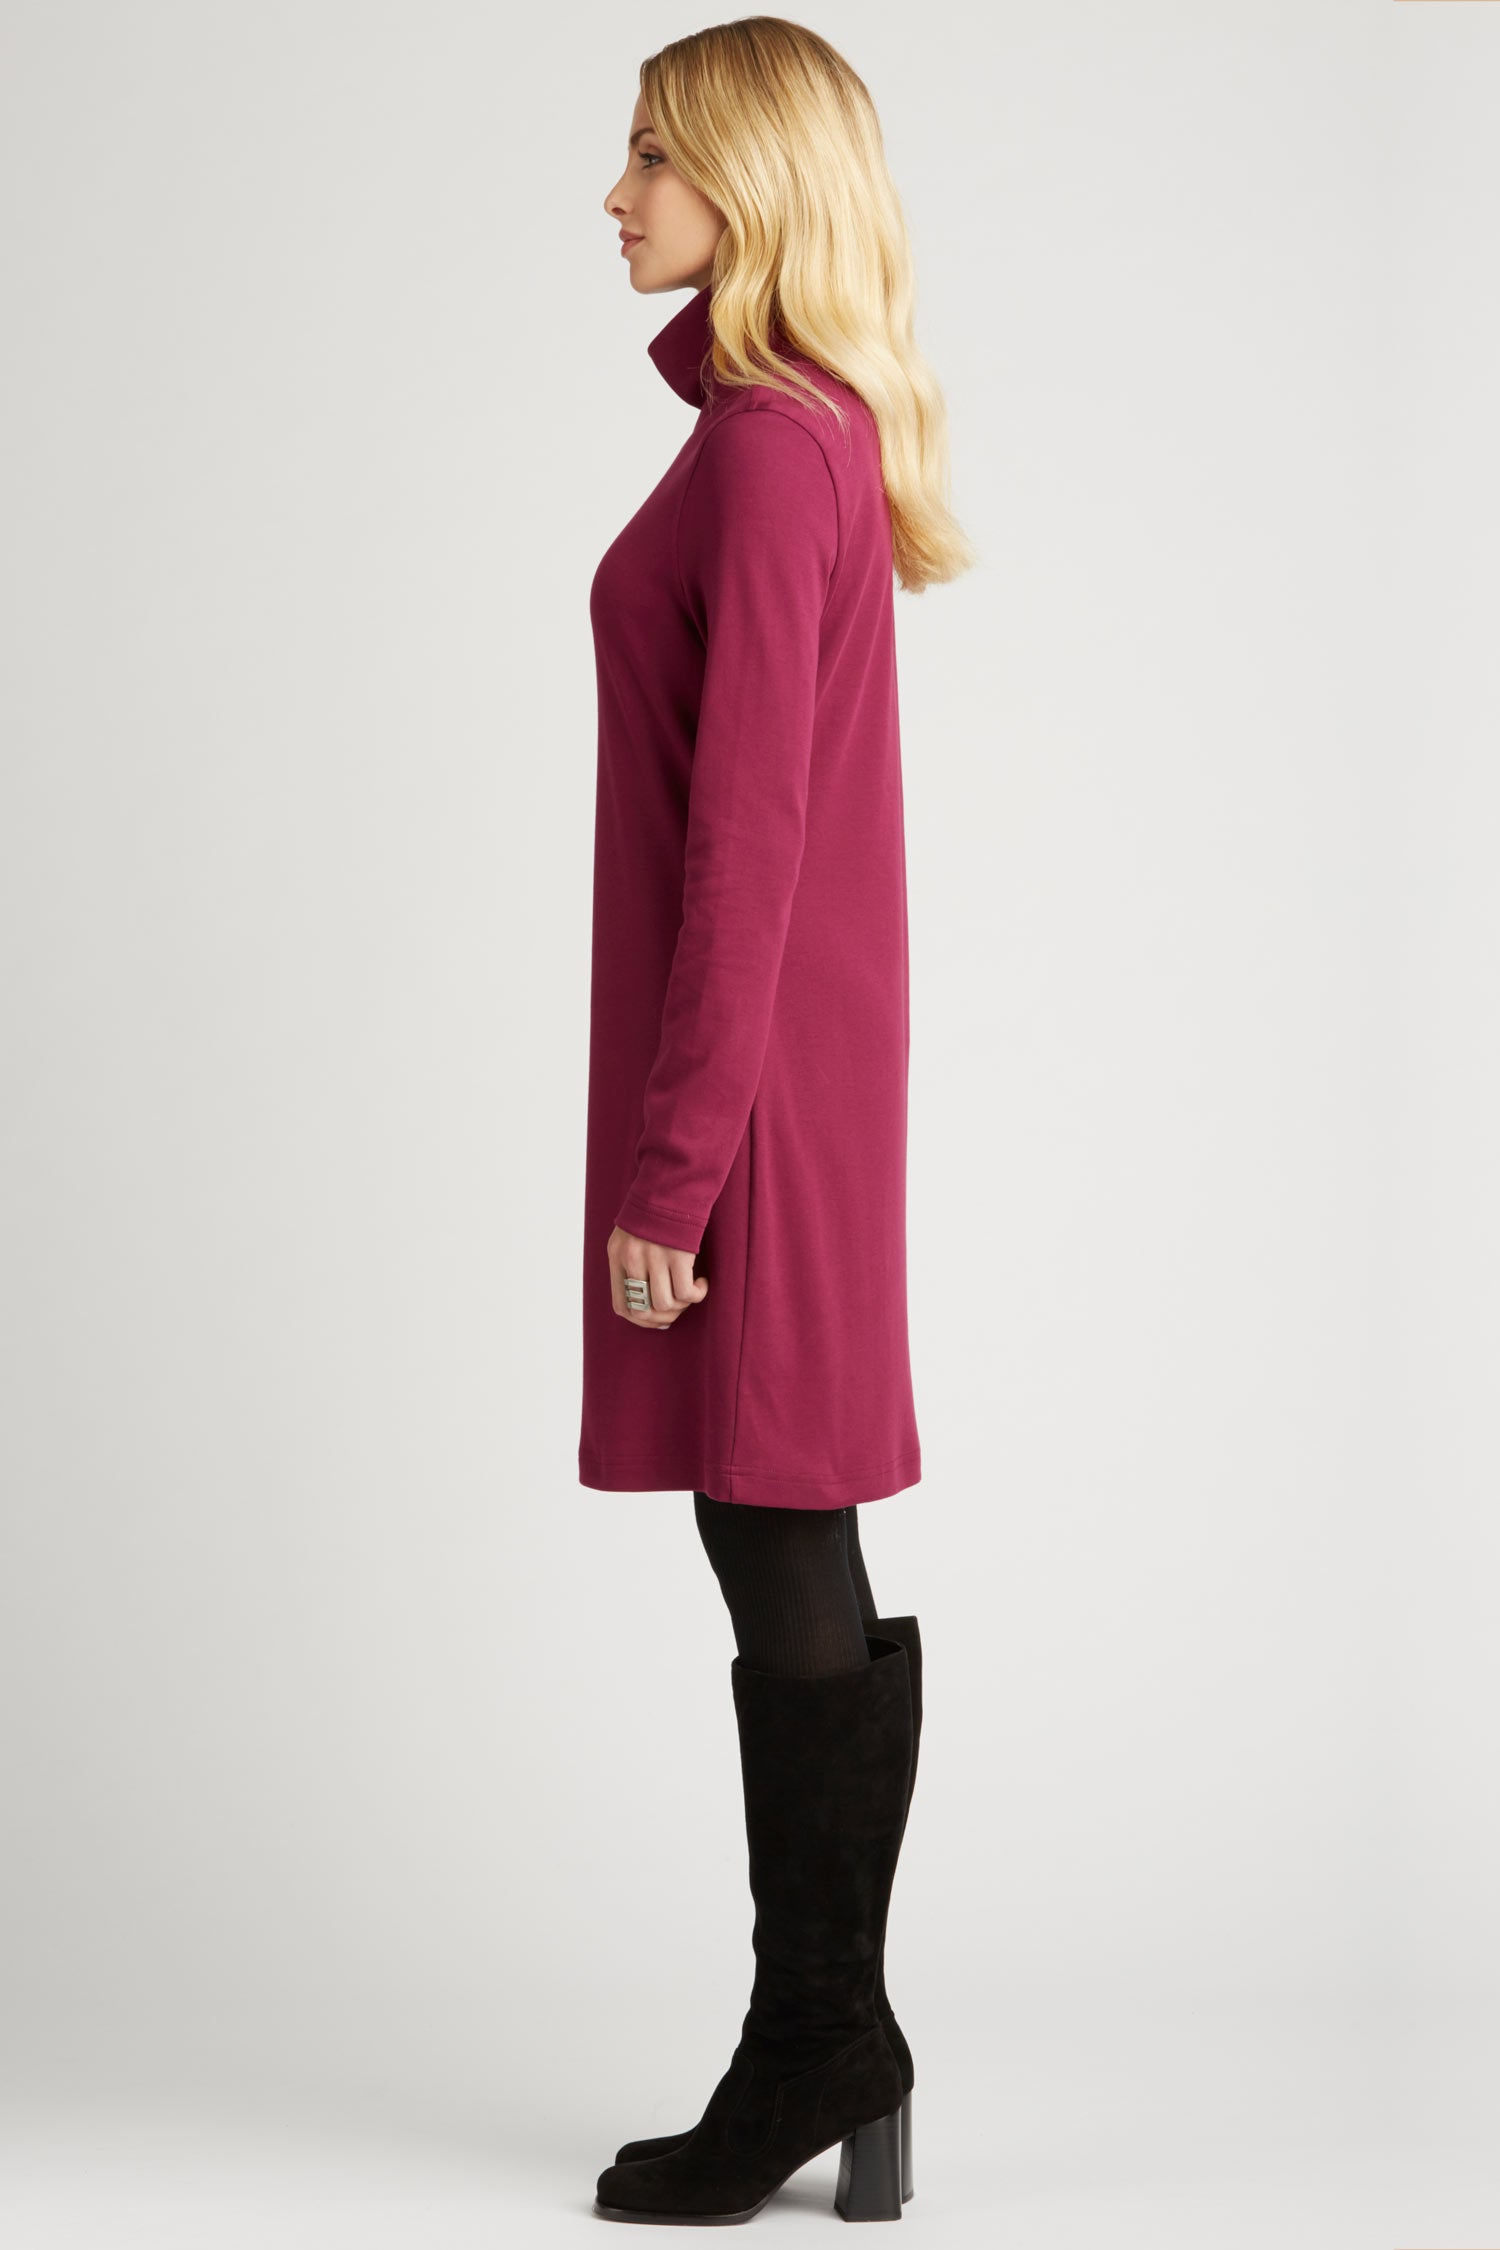 Womens Turtleneck Dress in Pink | Organic Cotton Clothing